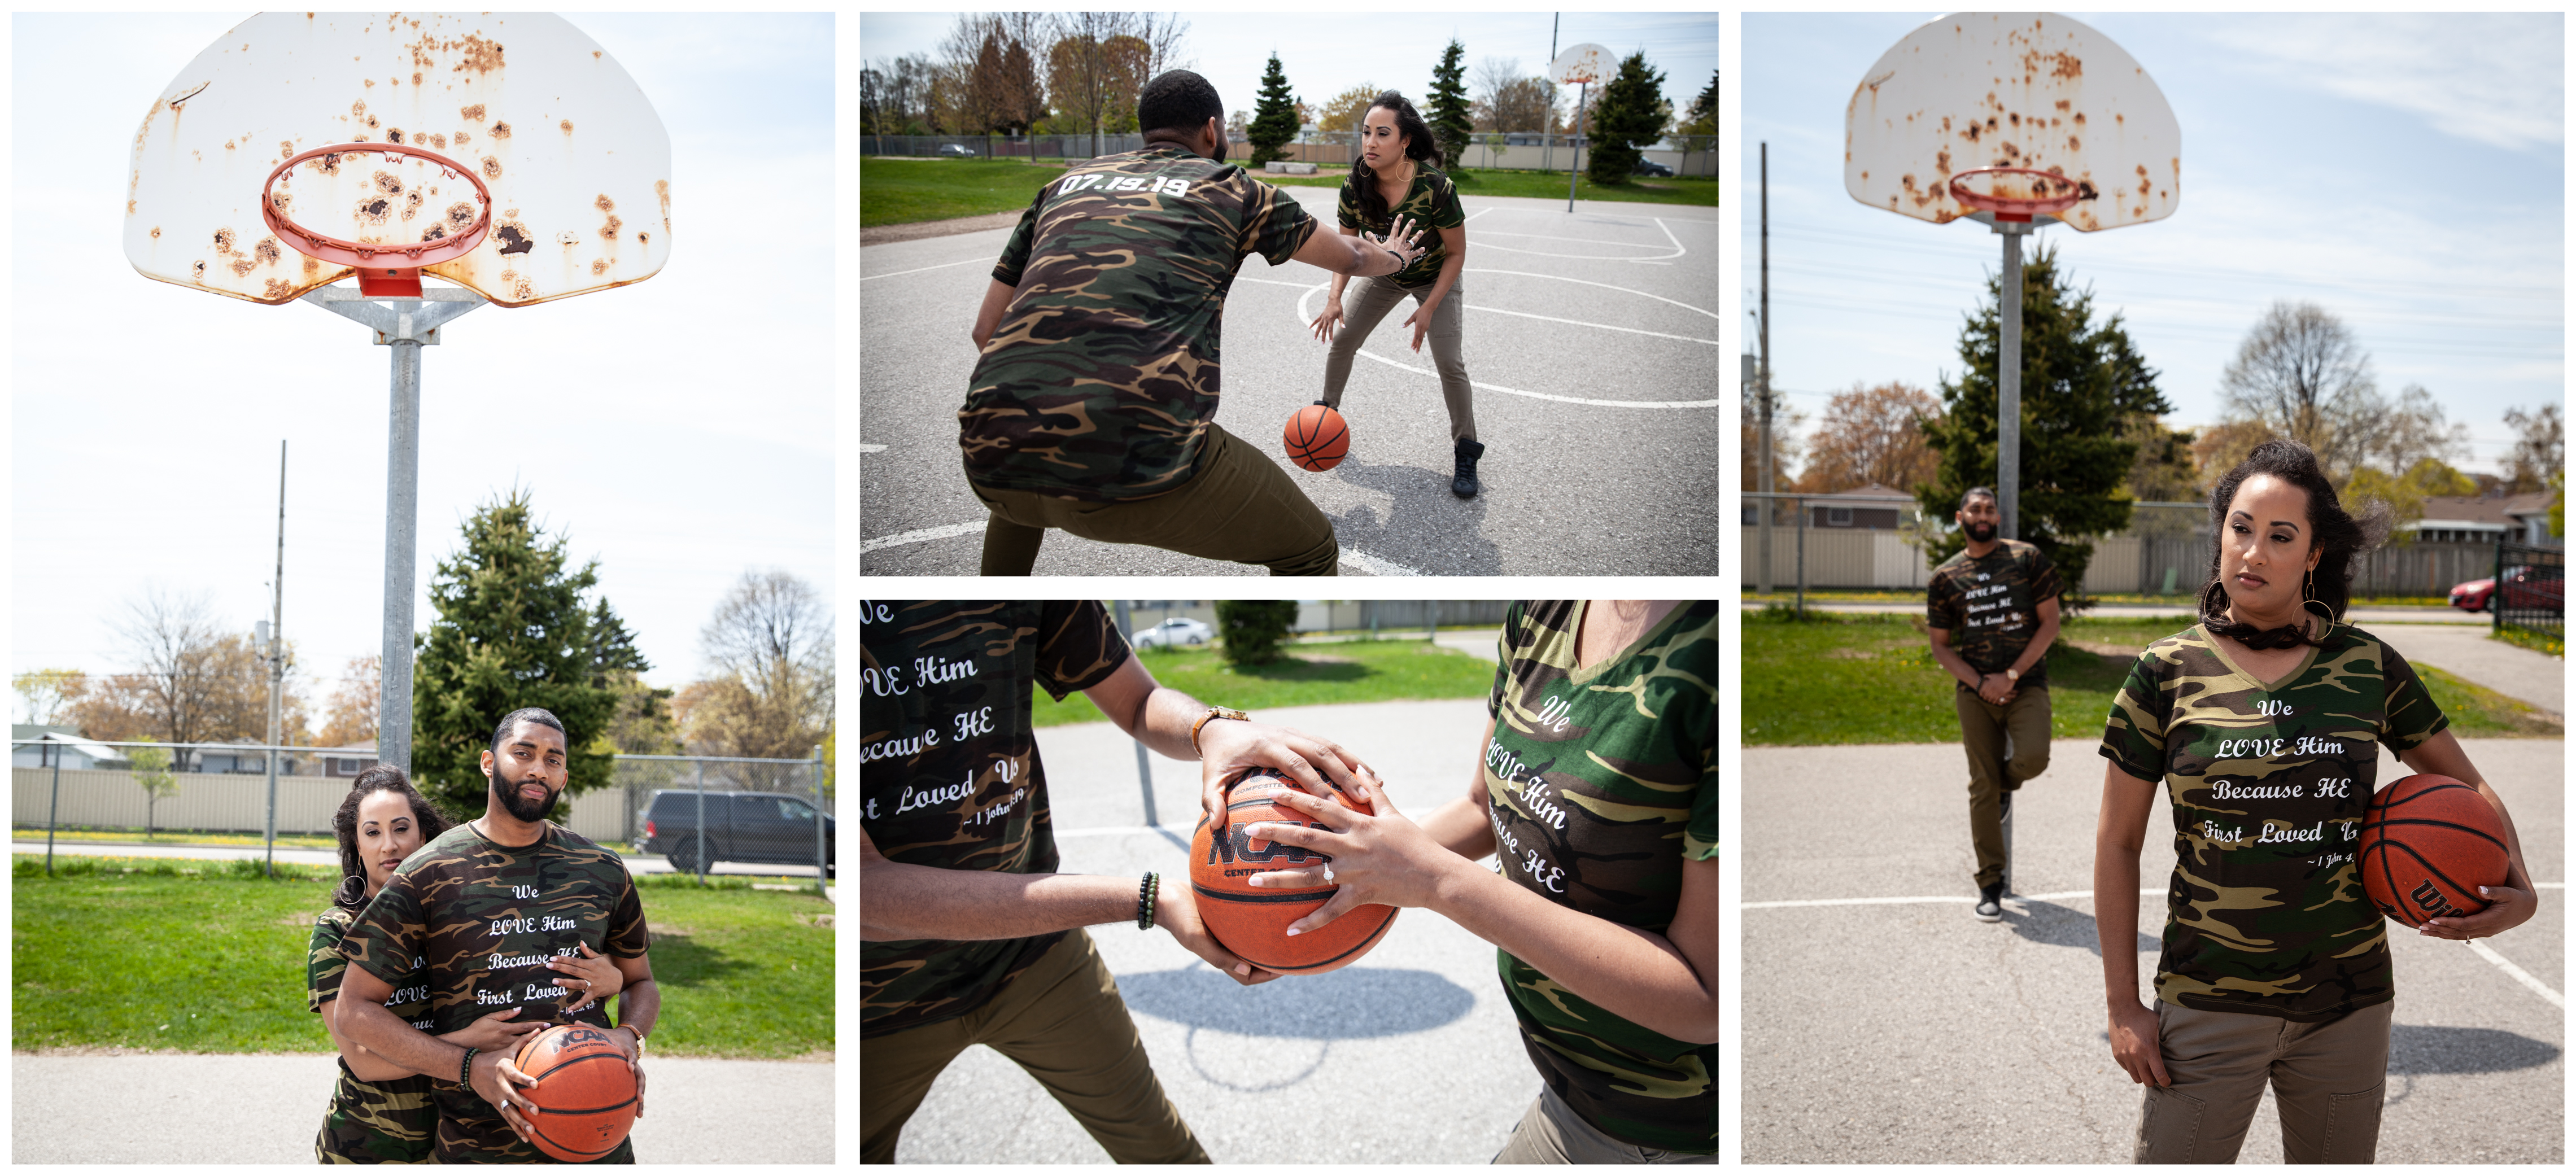 Basketball game during an engagement photoshoot in Ajax